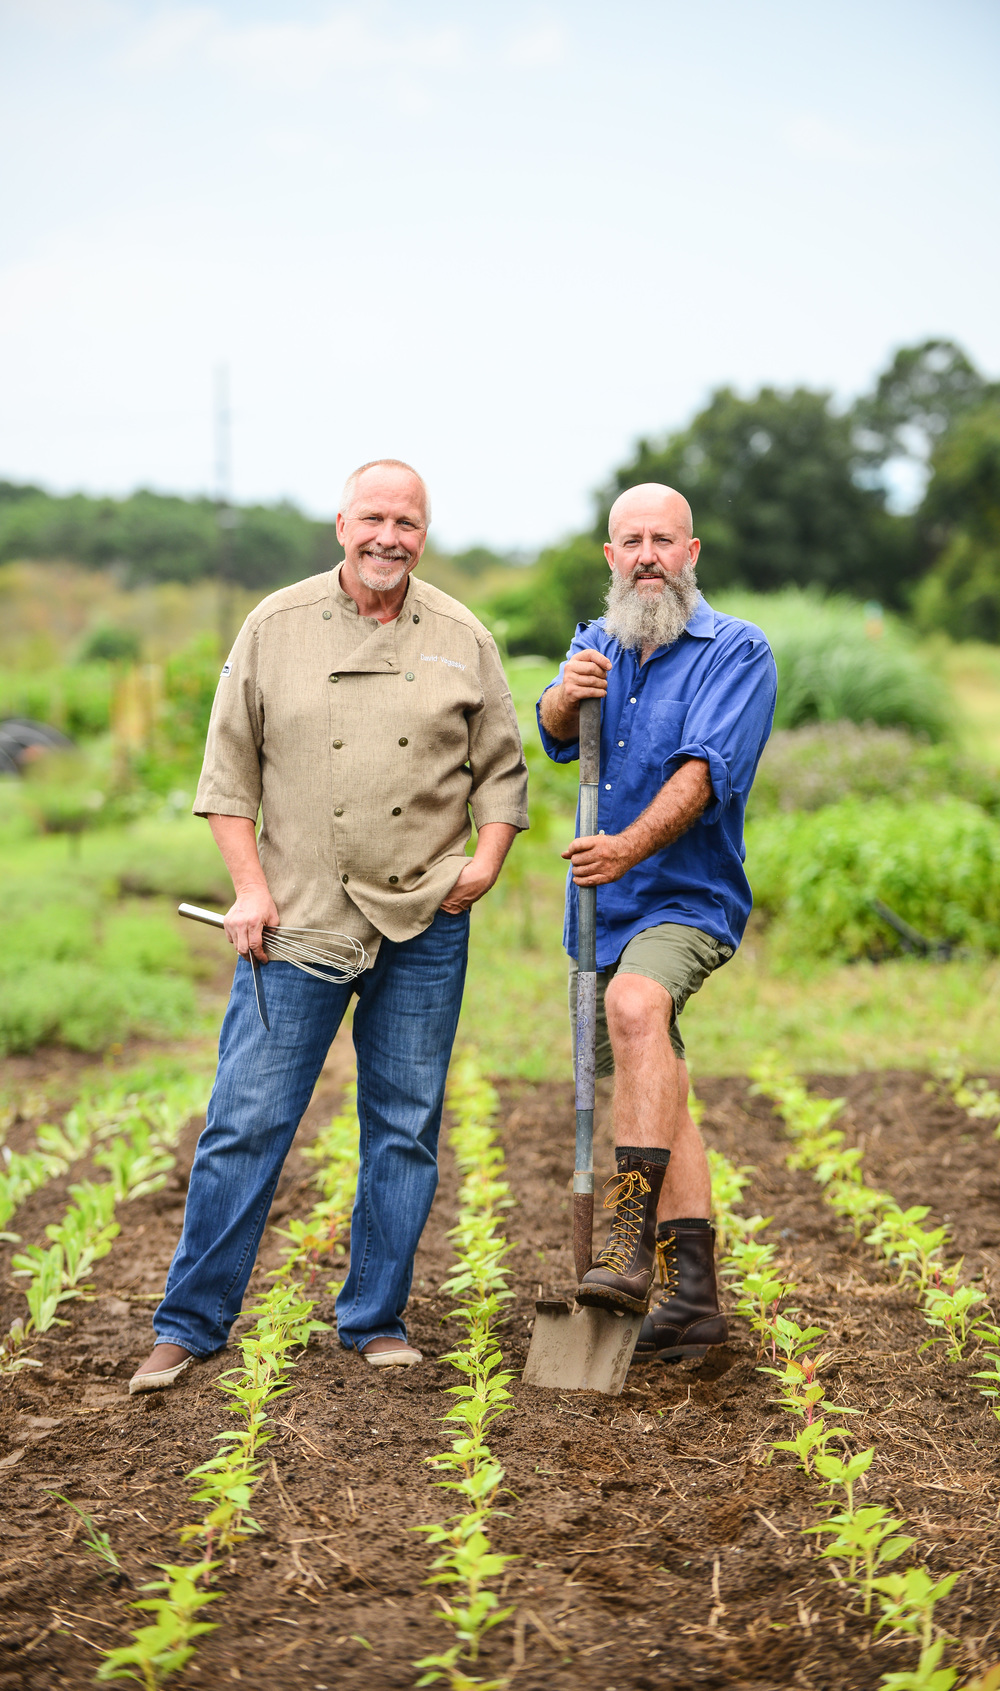 The Farmer & The Chef, promotional portrait